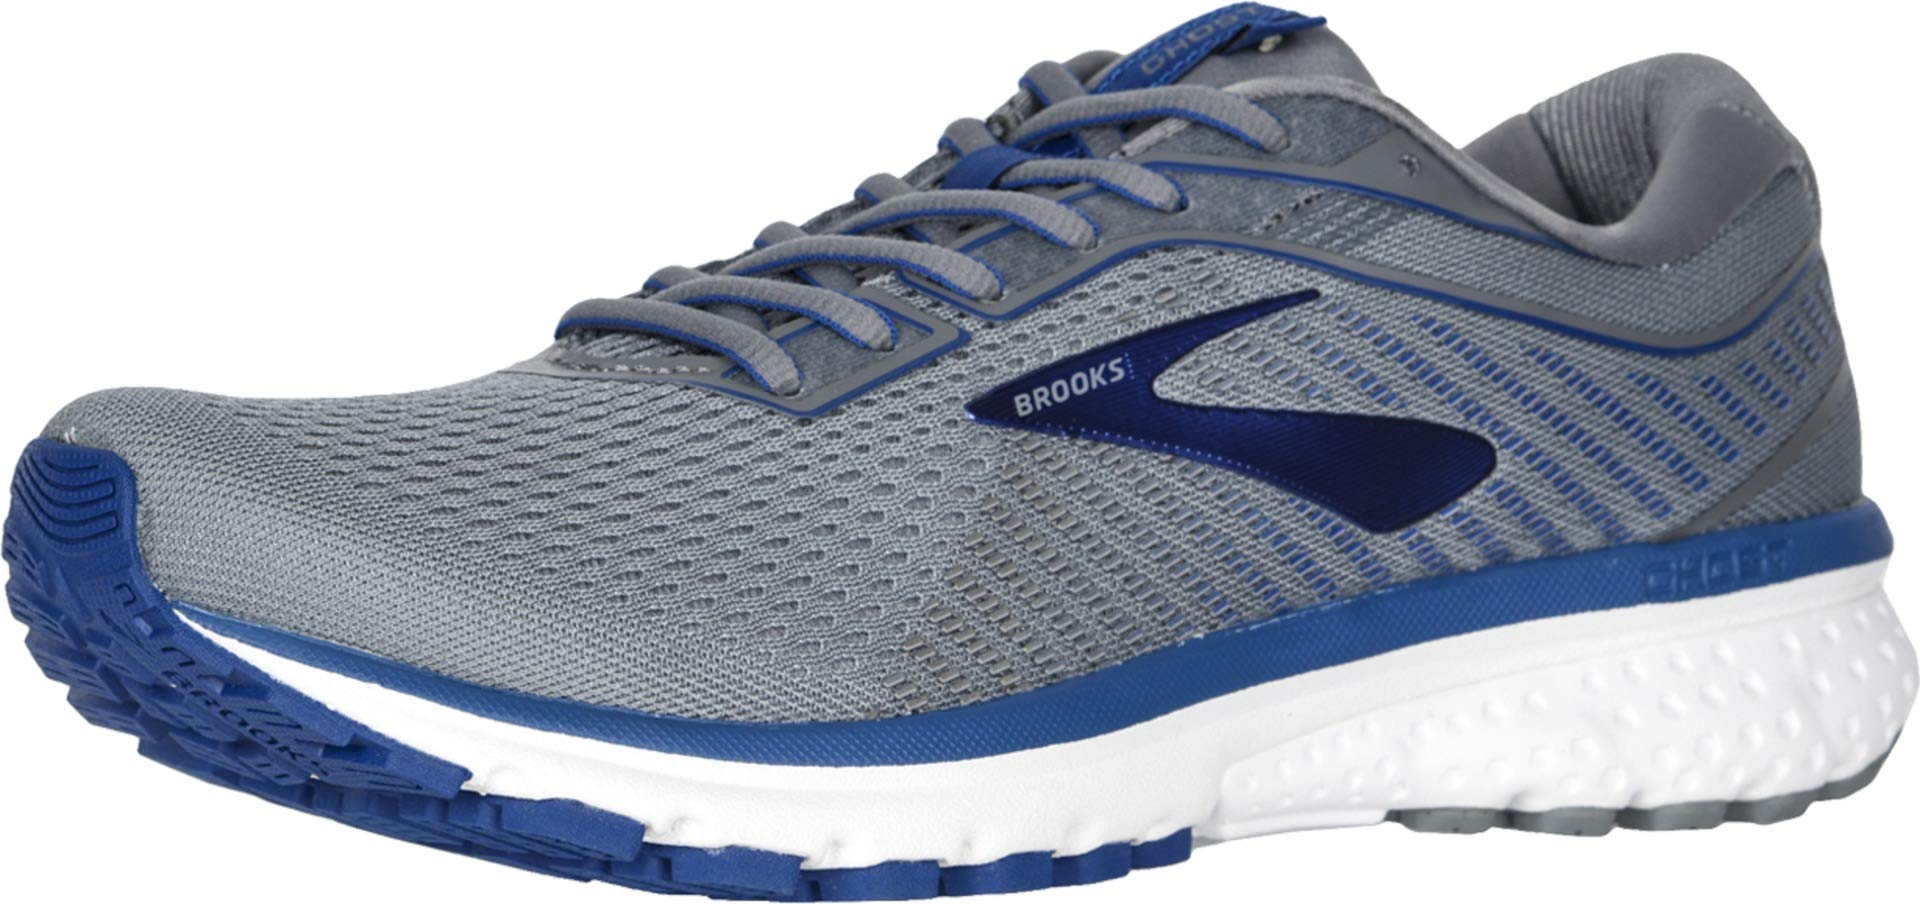 Brooks Ghost 12 Grey/Alloy/Blue 11 by Brooks